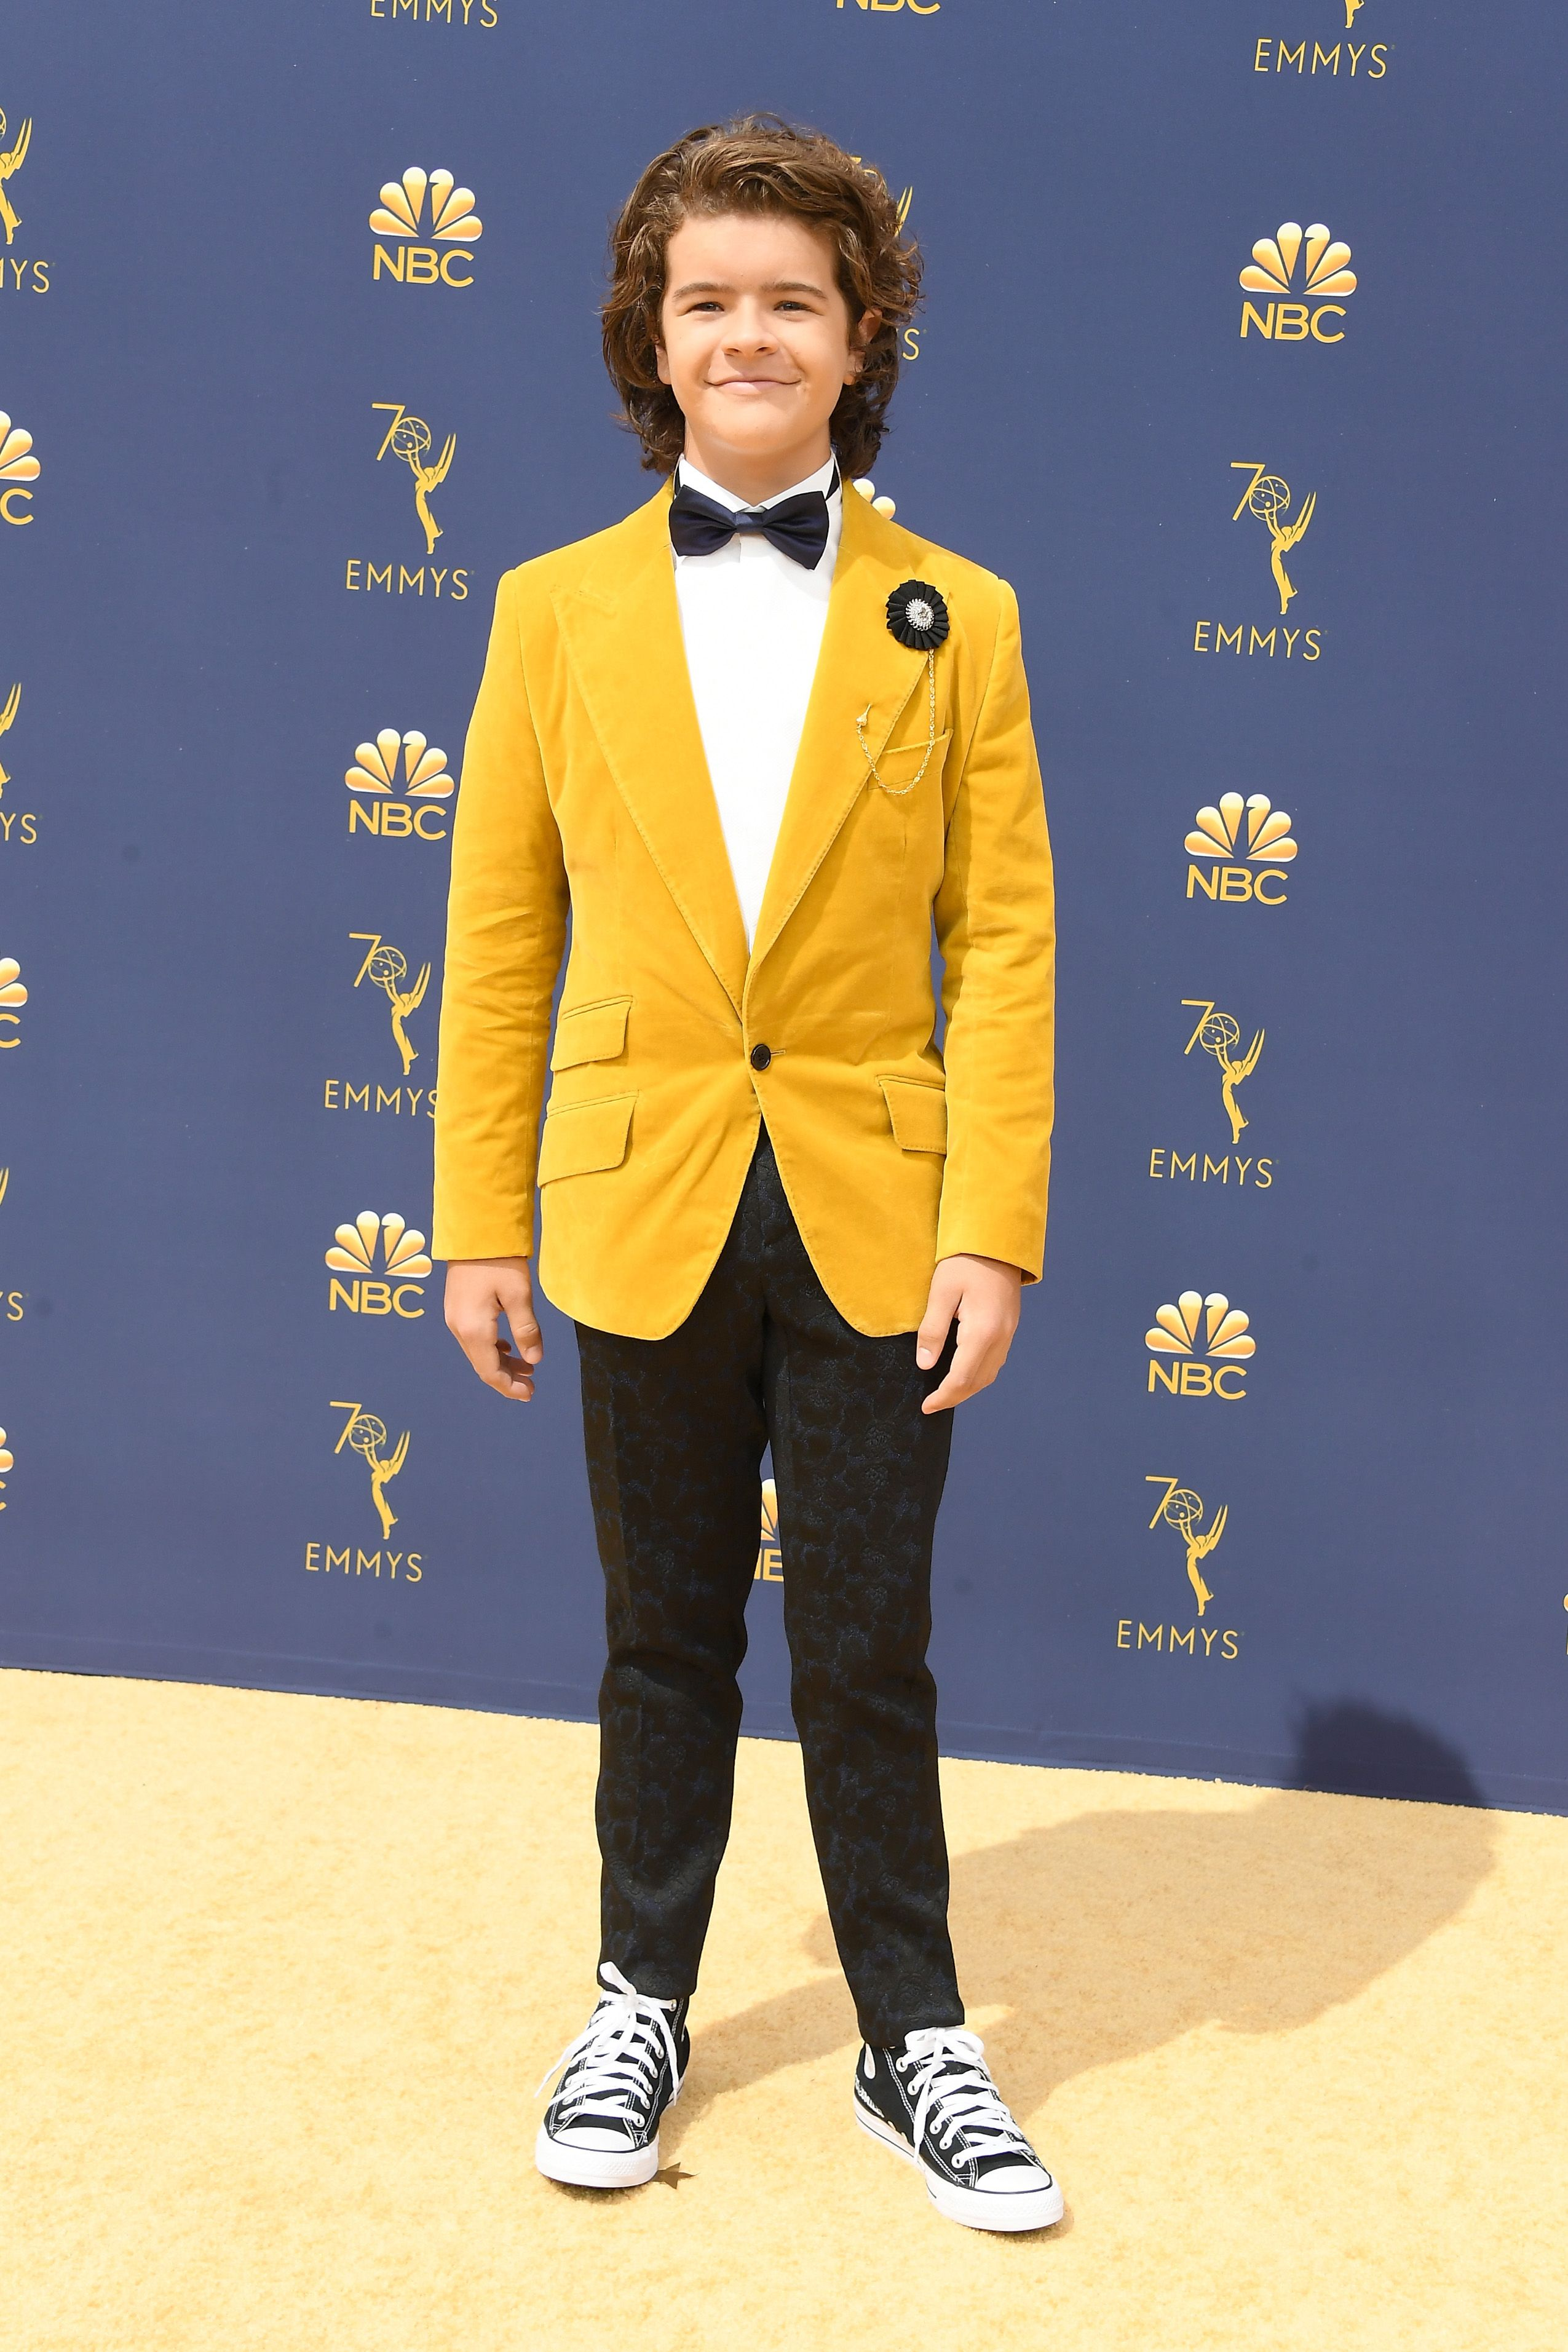 stranger things emmy 2018 alfombra roja